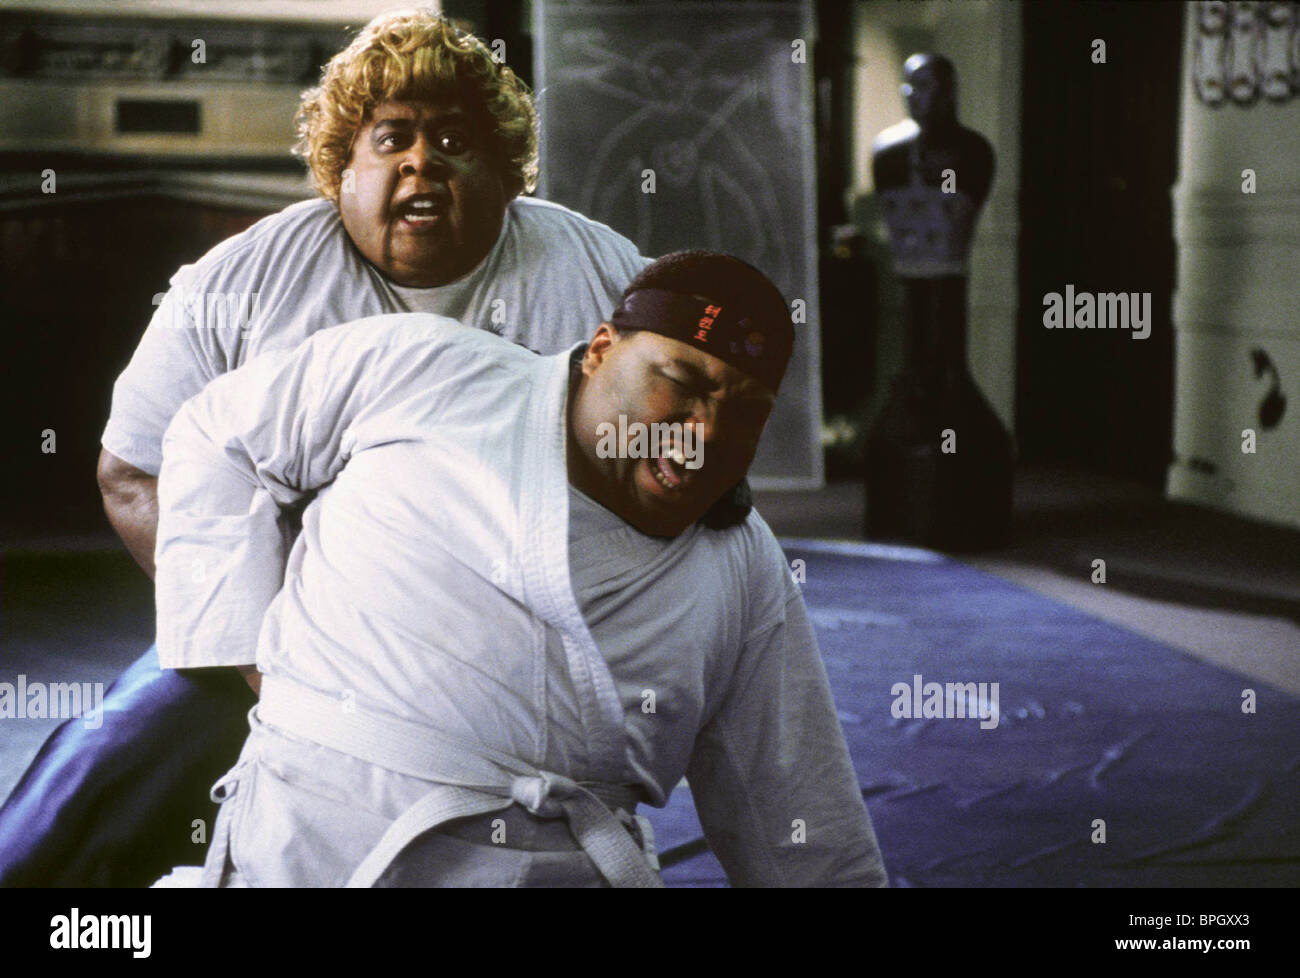 MARTIN LAWRENCE & ANTHONY ANDERSON BIG MOMMA'S HOUSE (2000) - Stock Image